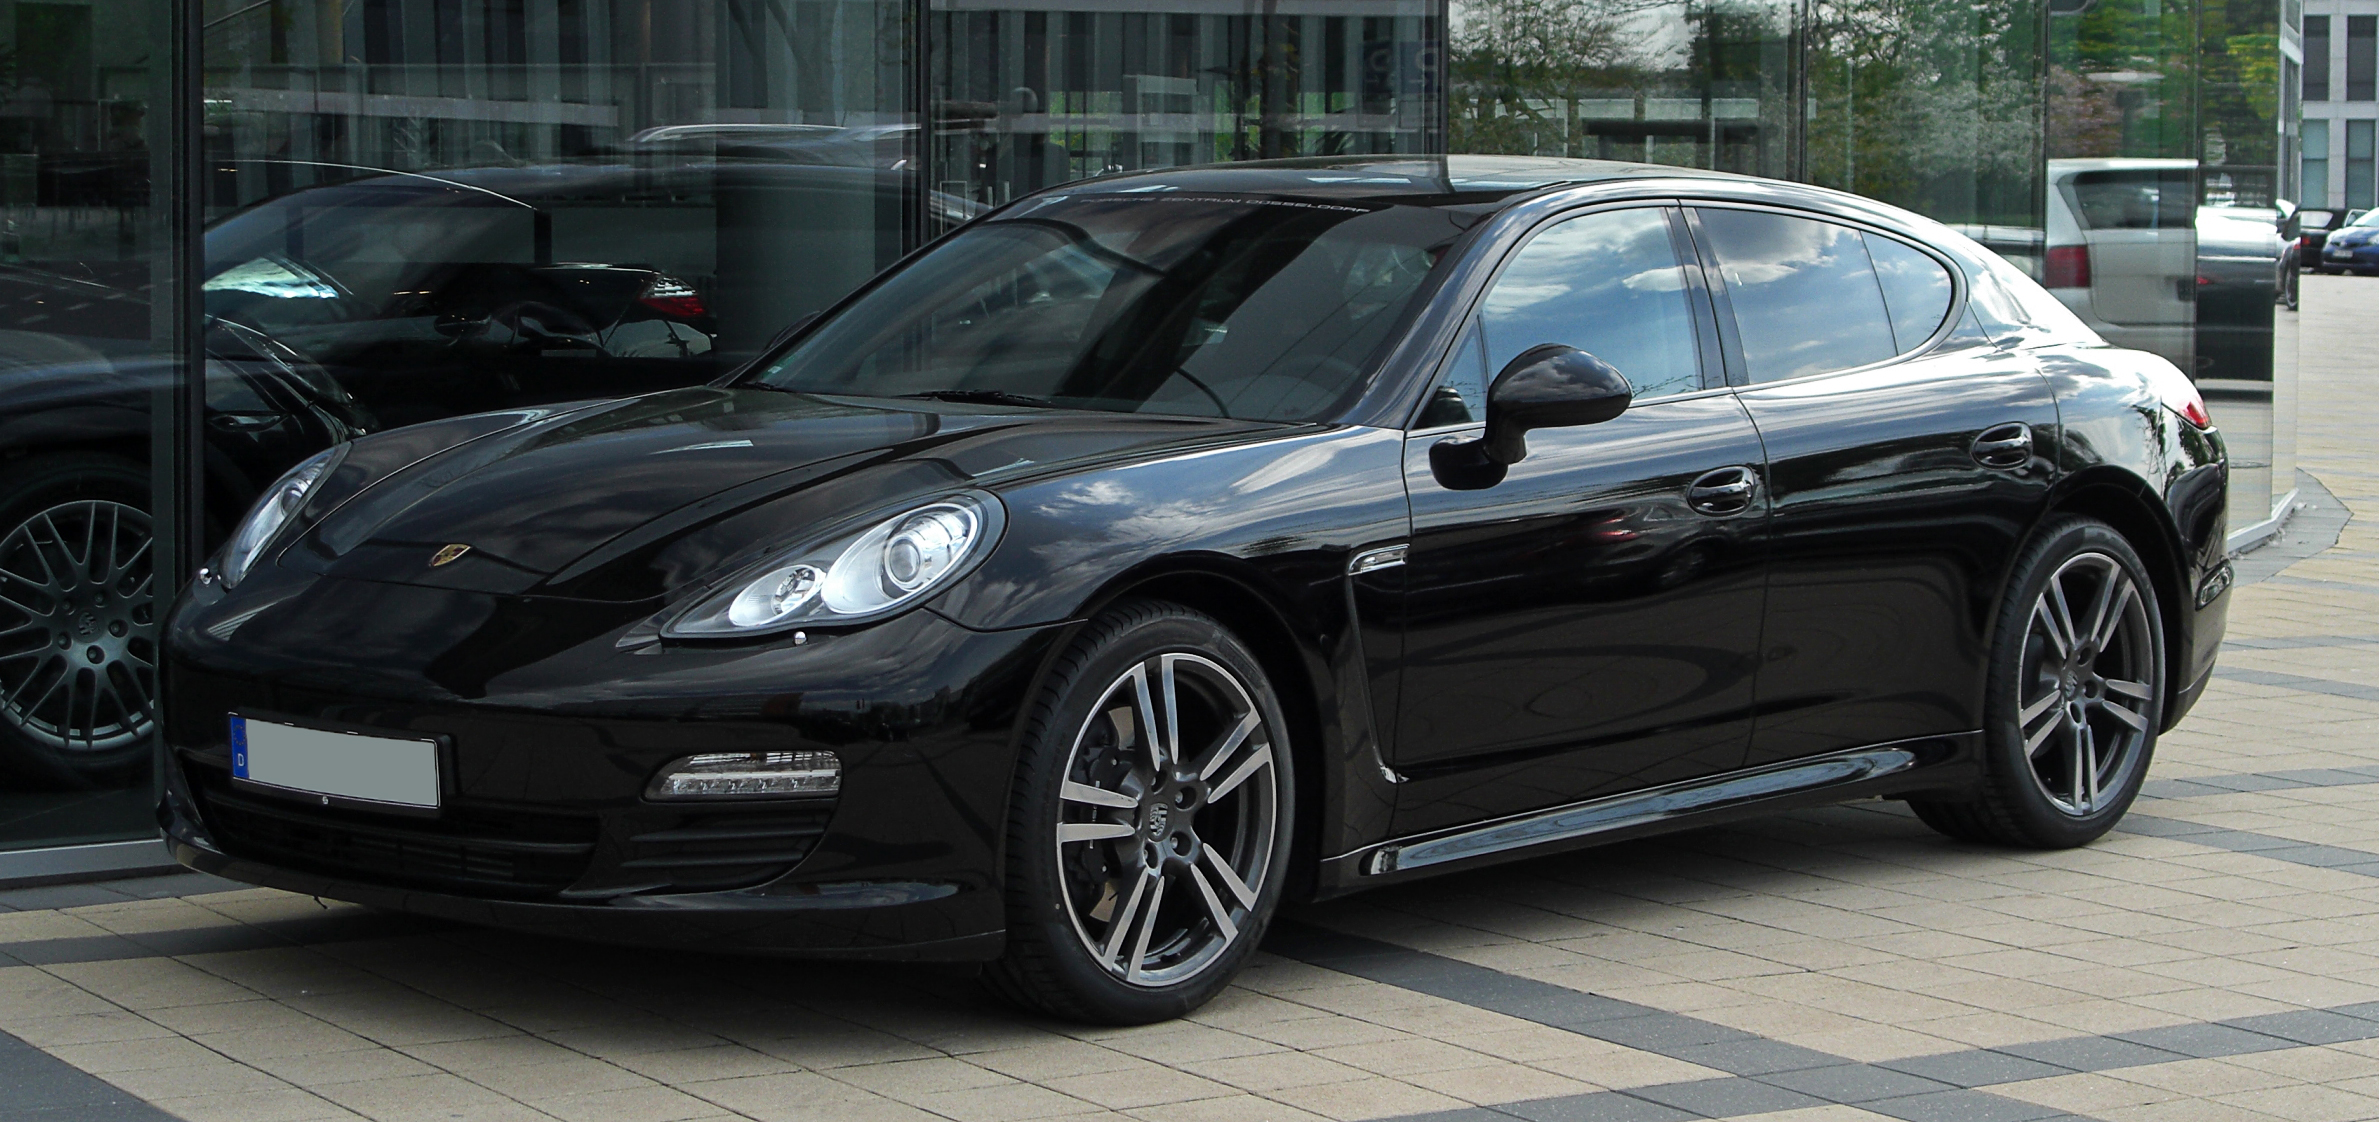 file porsche panamera 970 frontansicht 17 april 2011 d wikimedia commons. Black Bedroom Furniture Sets. Home Design Ideas